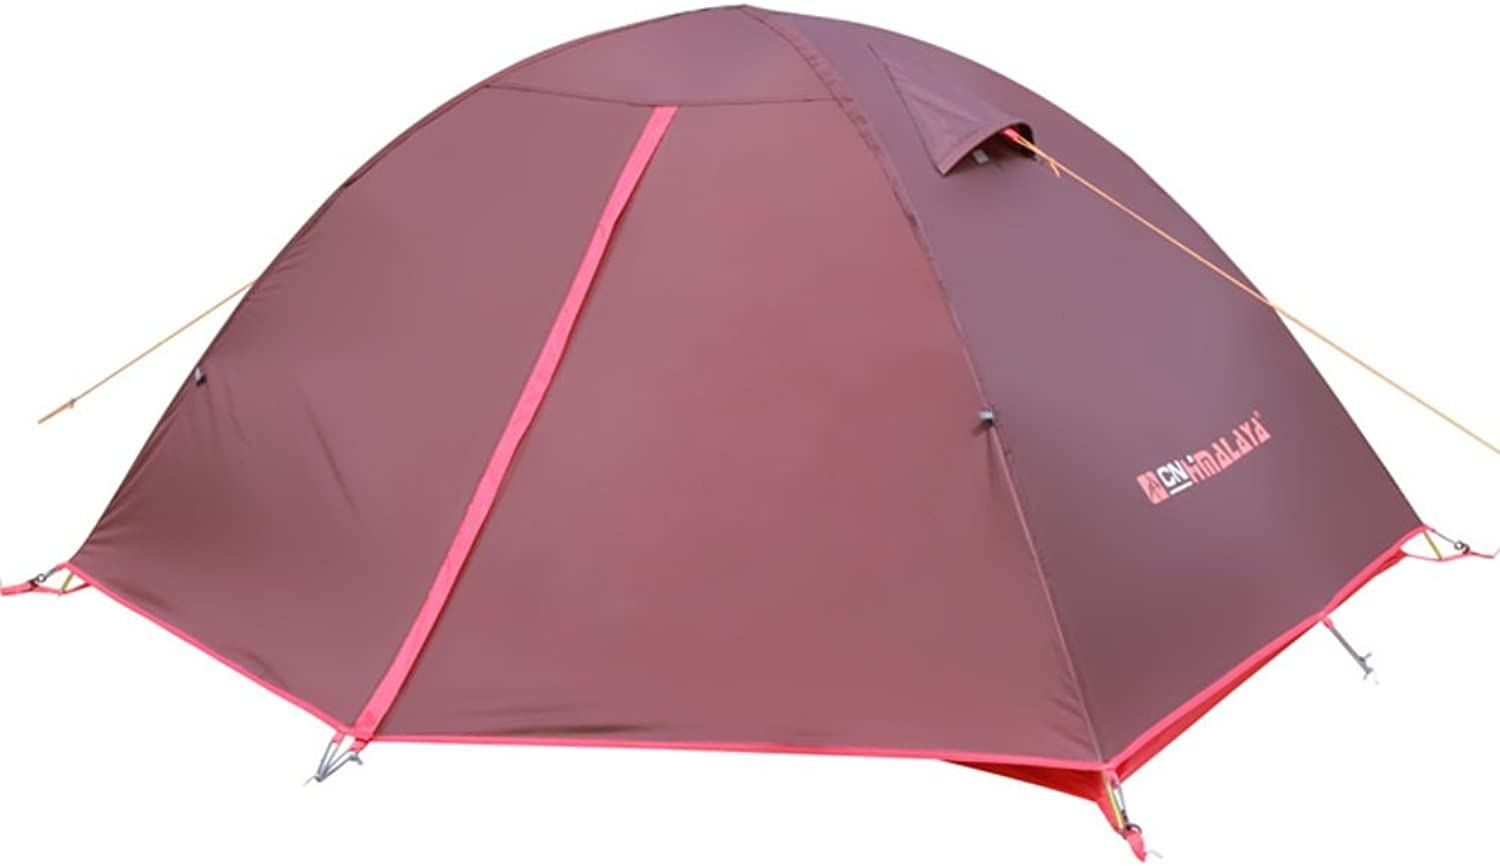 Outdoor34 family camp Twgoldom Office of a camping tent many people driving tent